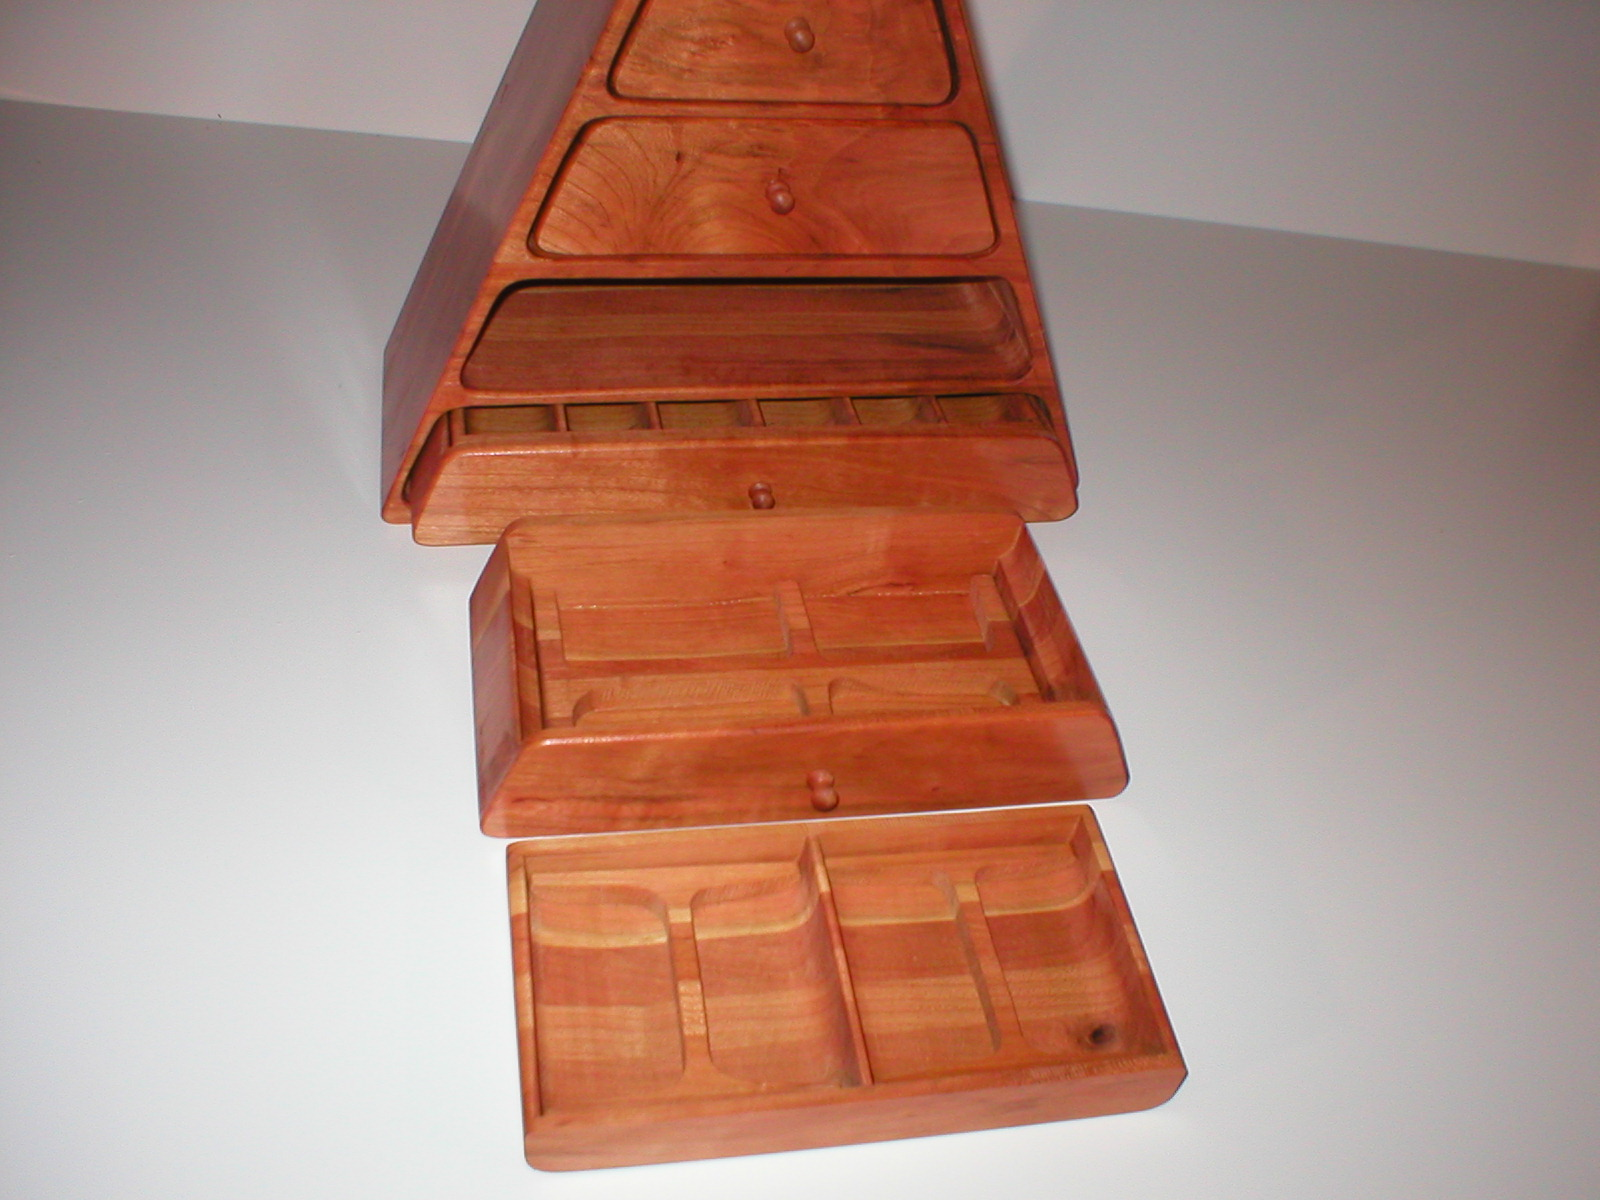 full of lift out trays